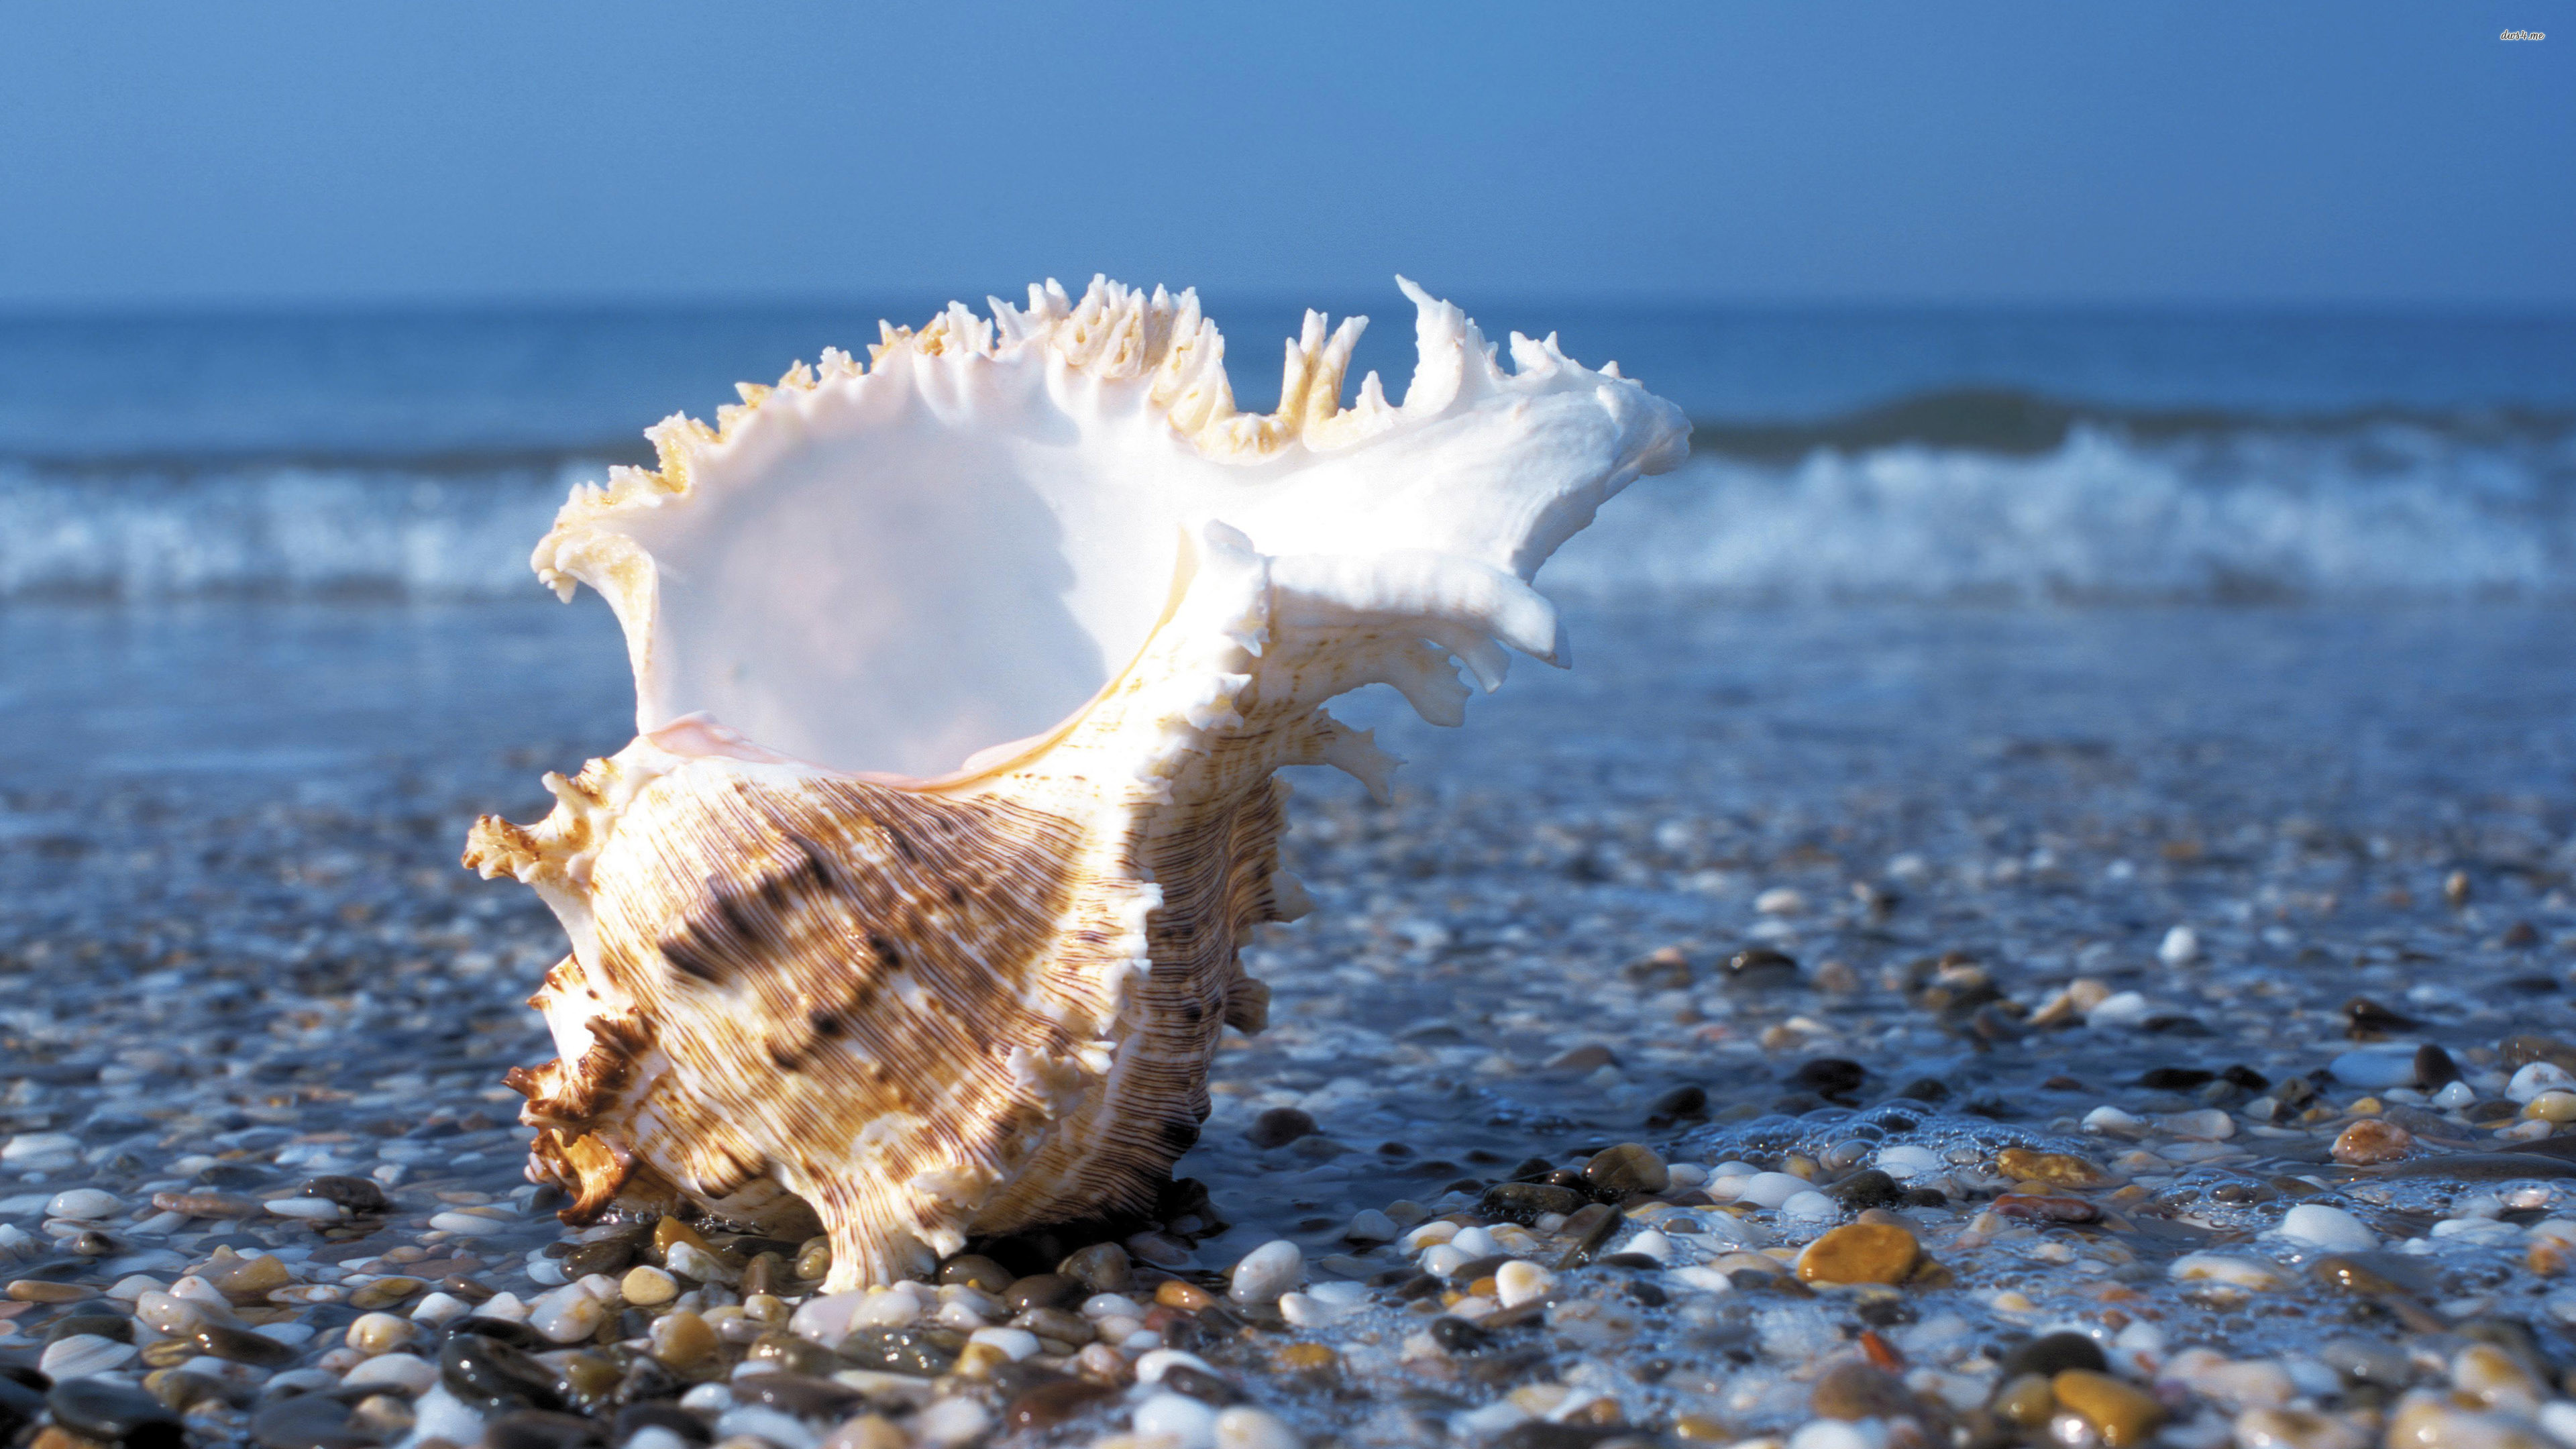 Res: 3840x2160, ... Shell on a pebble beach wallpaper  ...